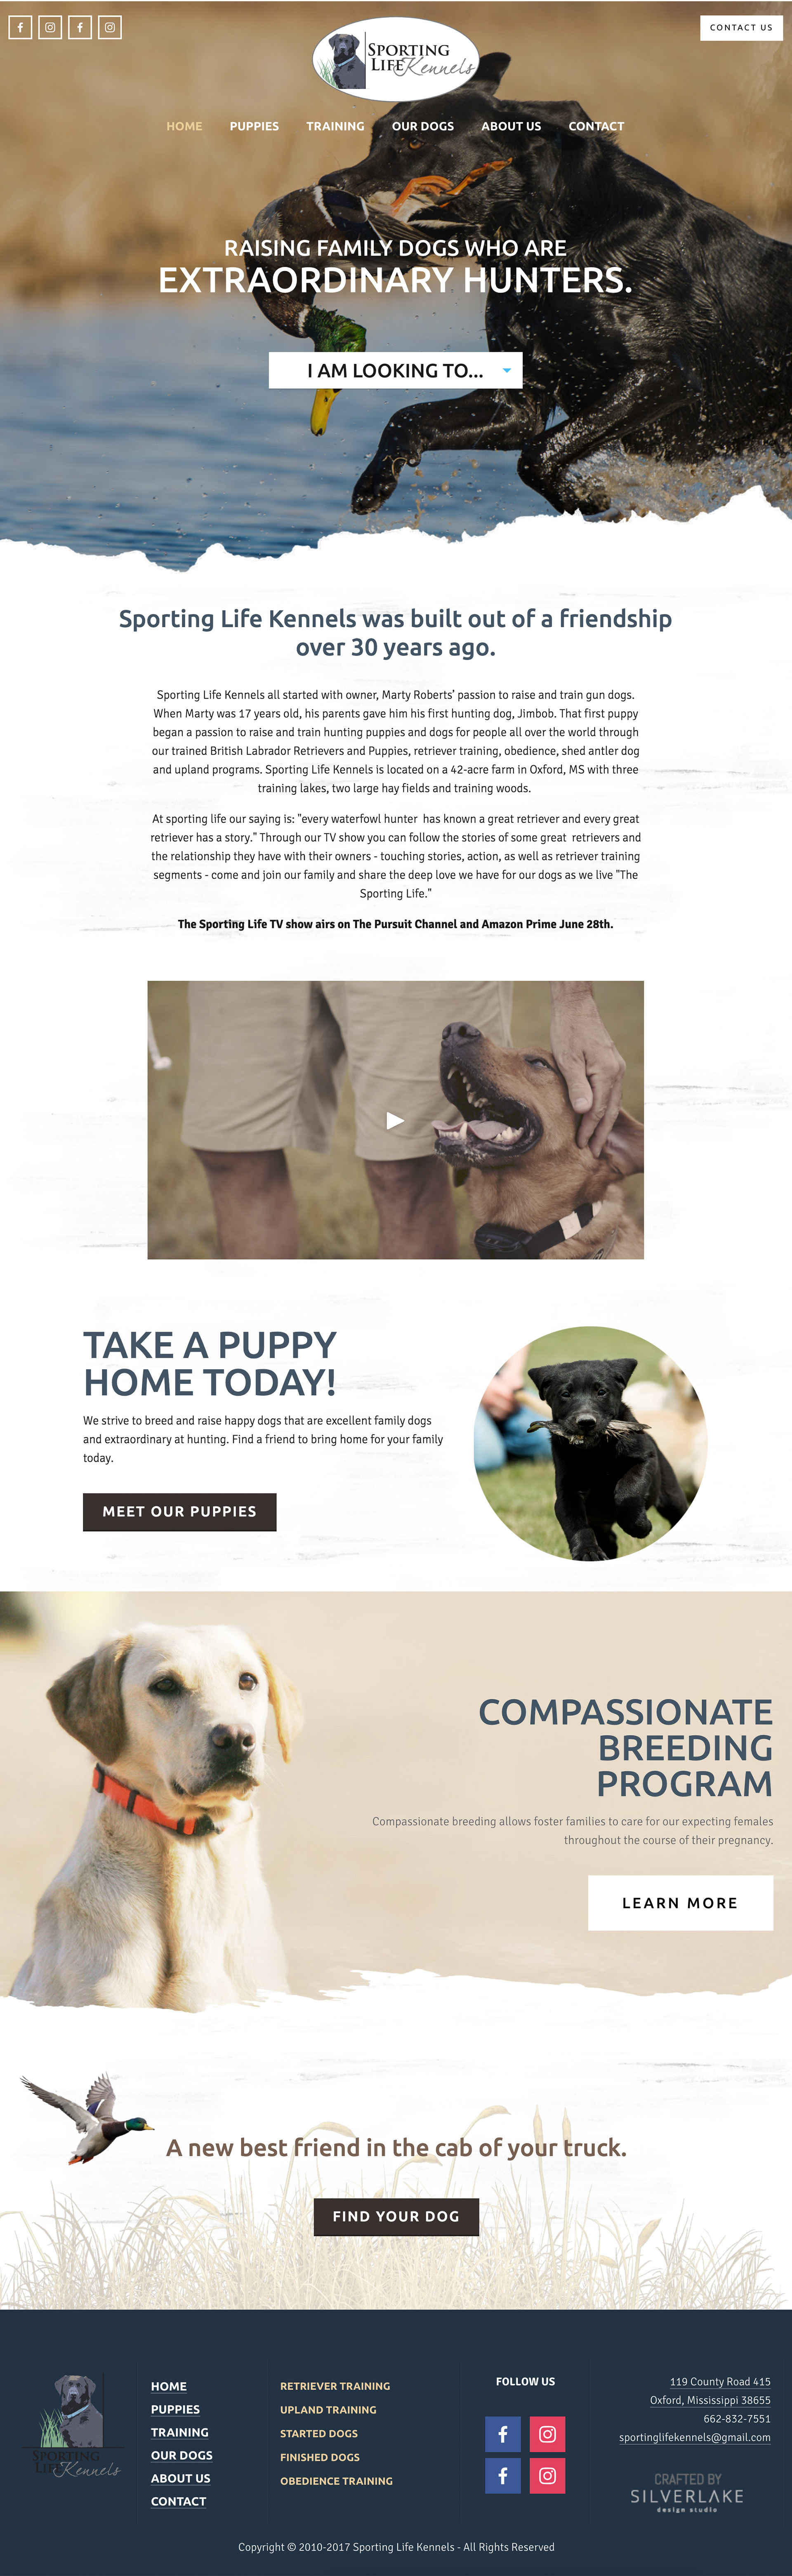 Sporting Life Kennels